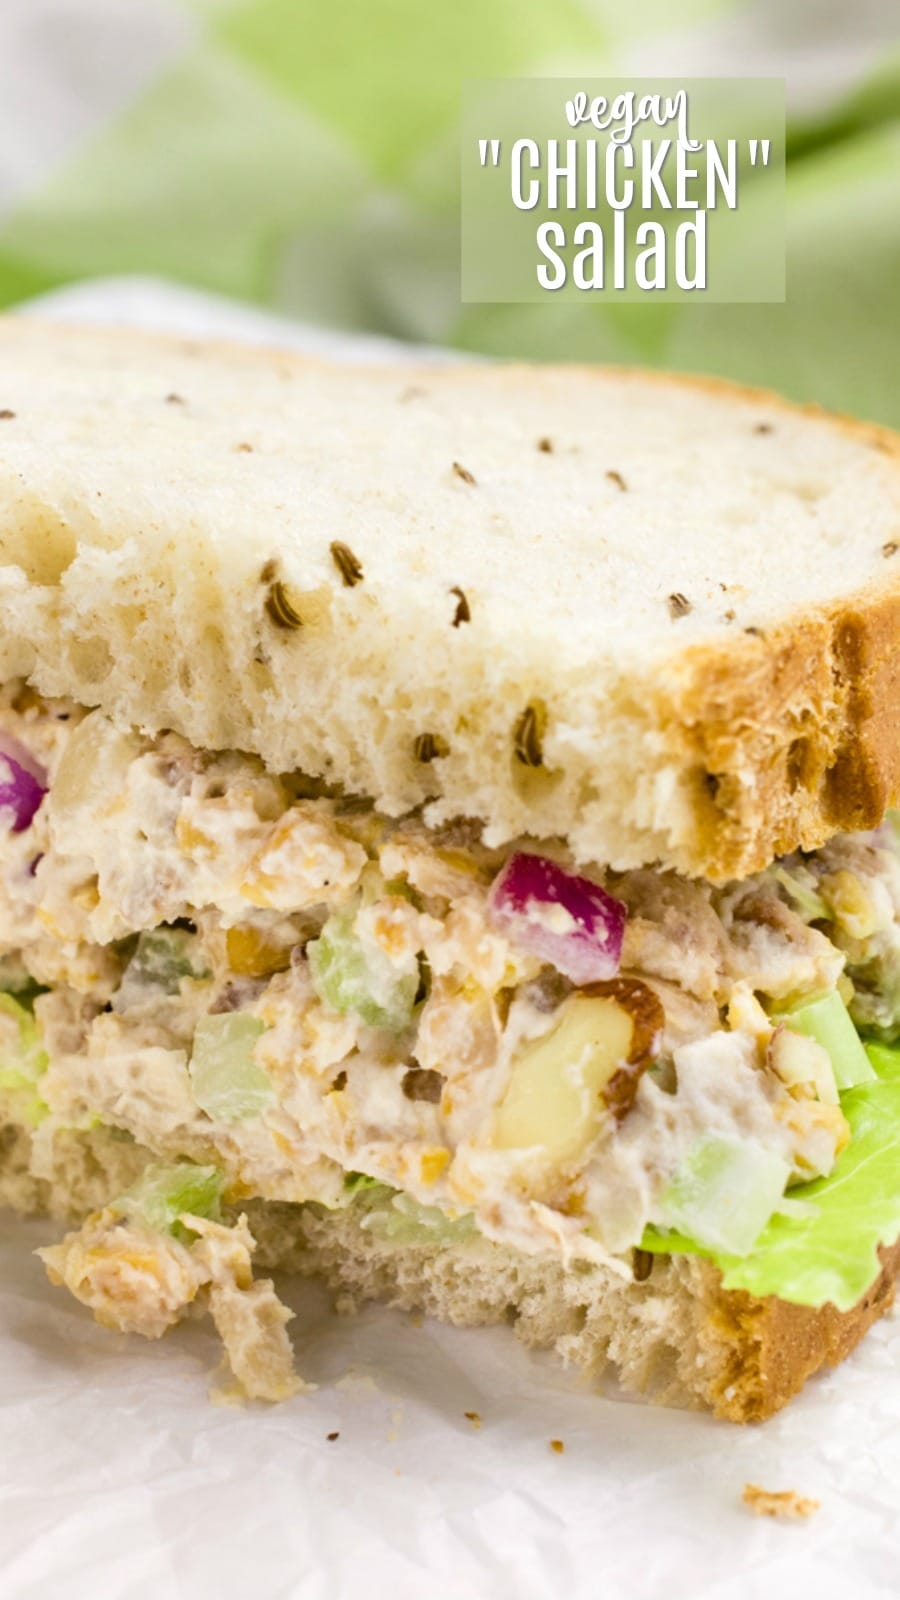 Vegan chicken salad sandwich for Pinterest.